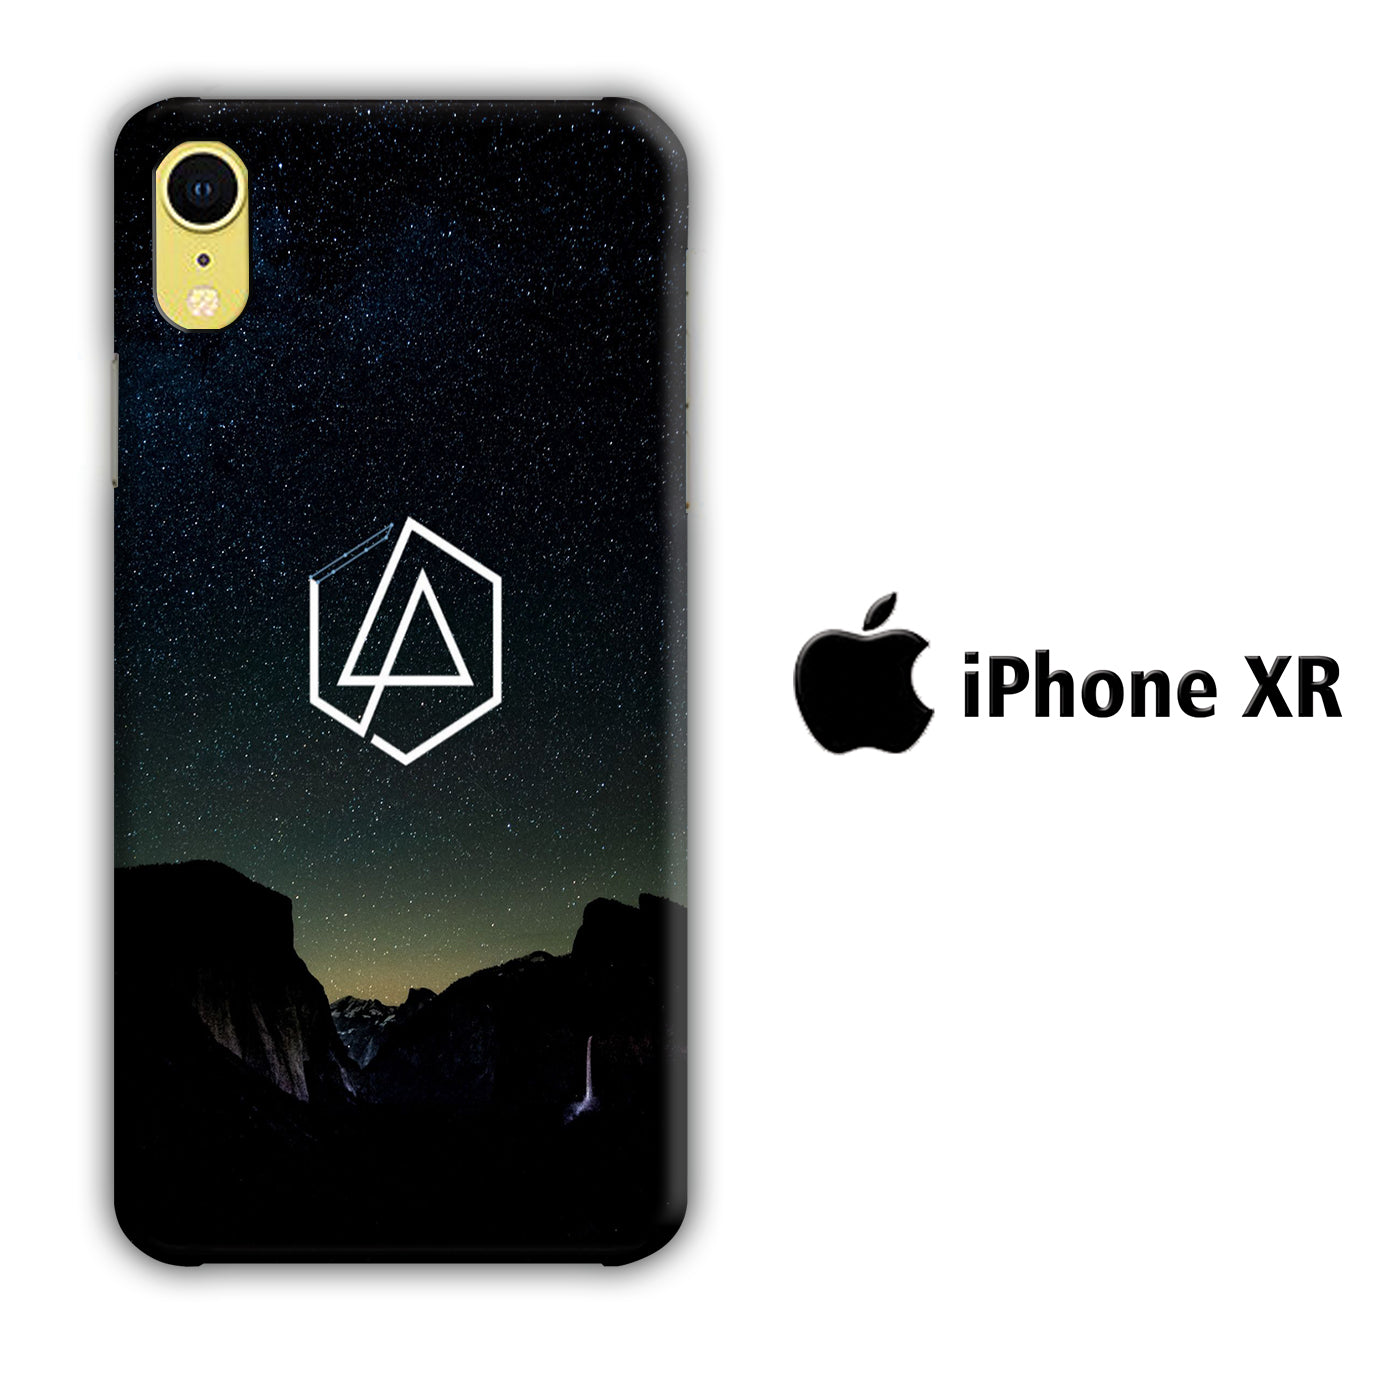 Linkin Park LP 006 iPhone XR 3D Case